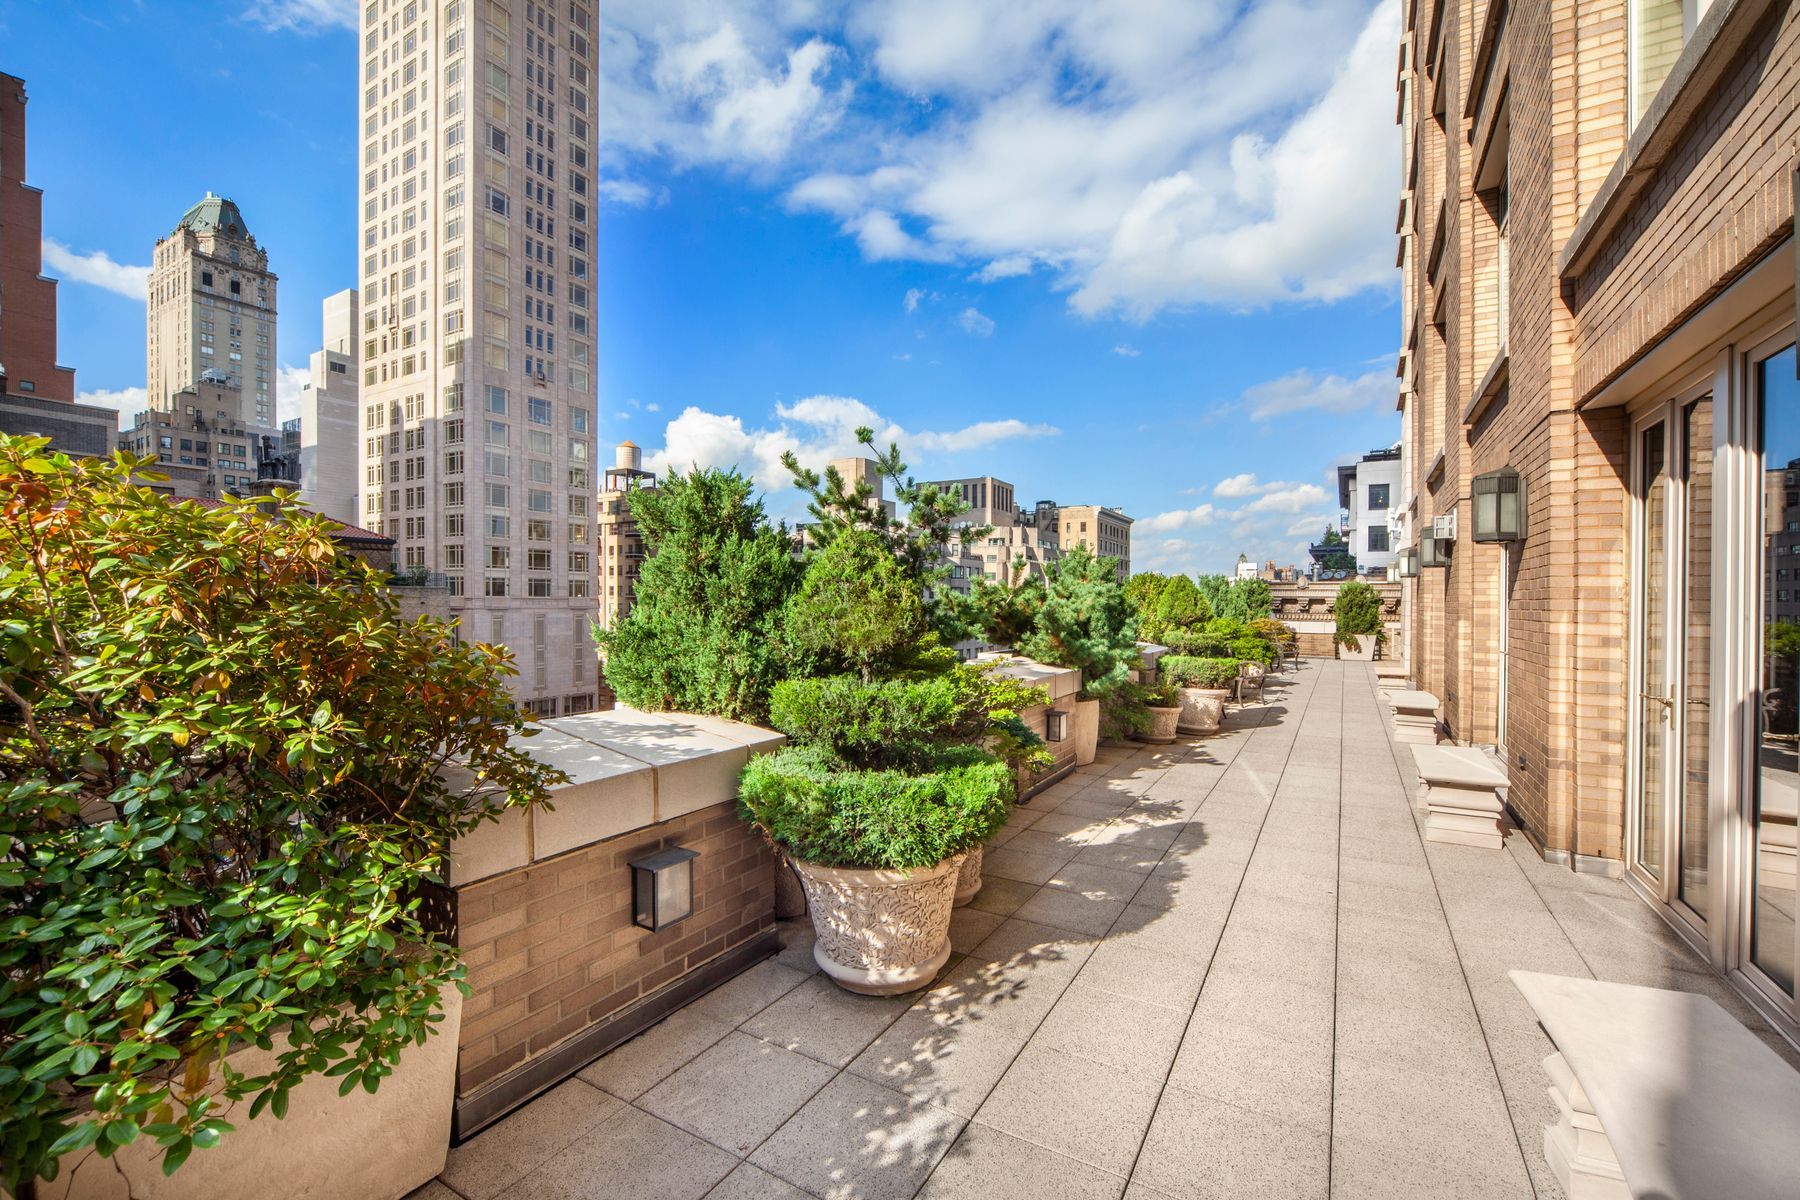 Condominium for Sale at Spectacular Terraces on Park Avenue 515 Park Avenue 15/16, New York, New York 10022 United States